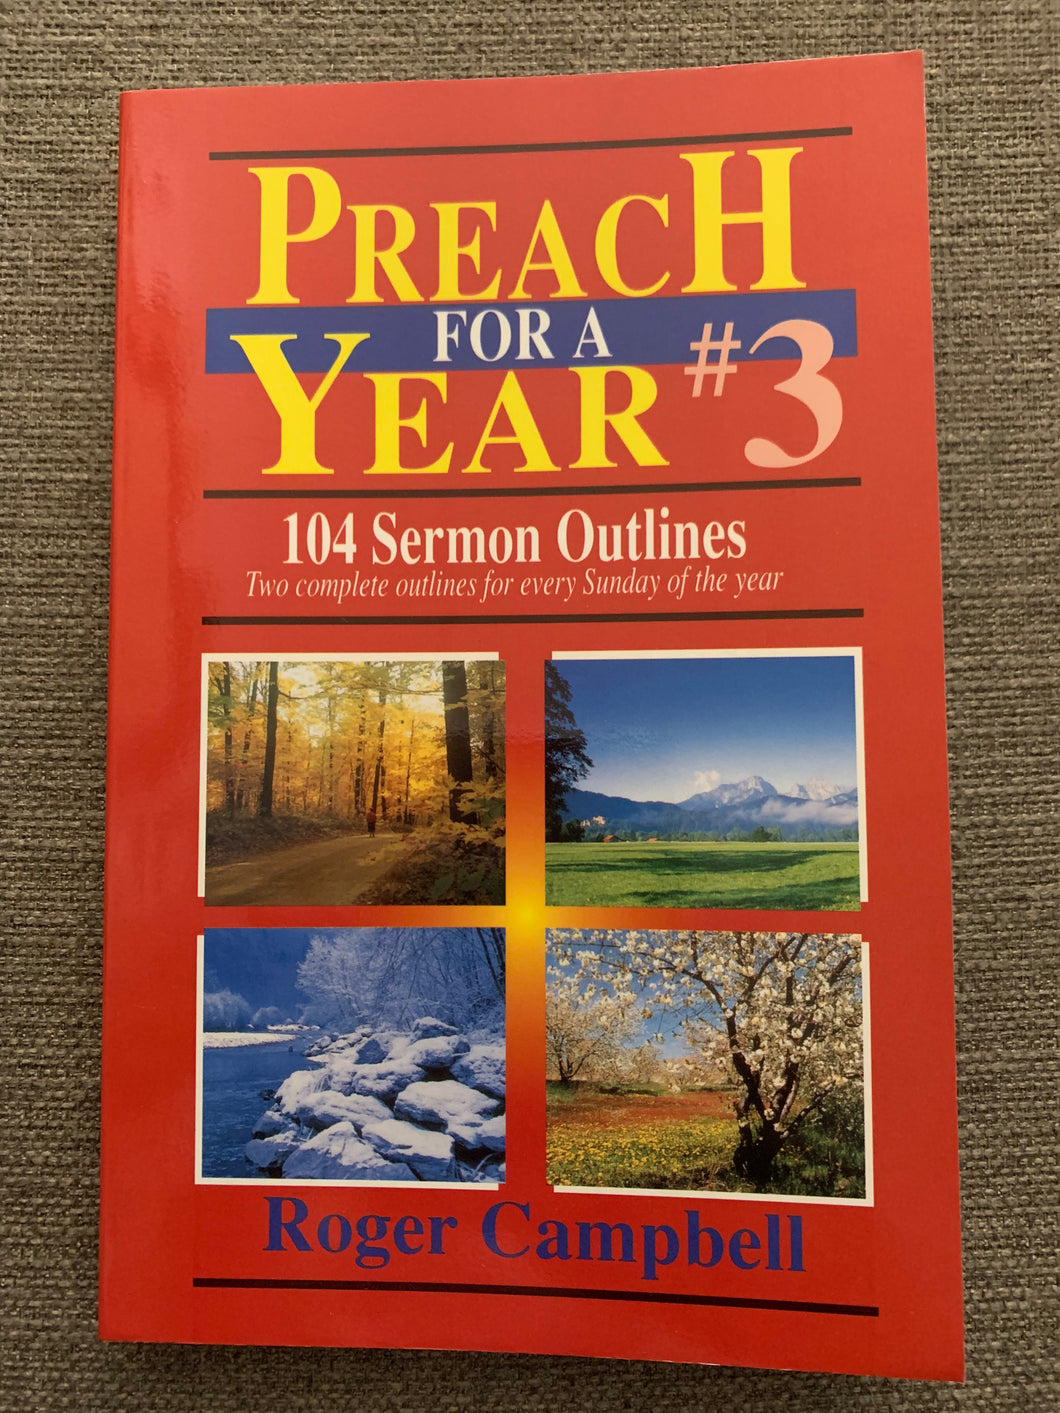 Preach for a Year #3: 104 Sermon Outlines by Roger Campbell